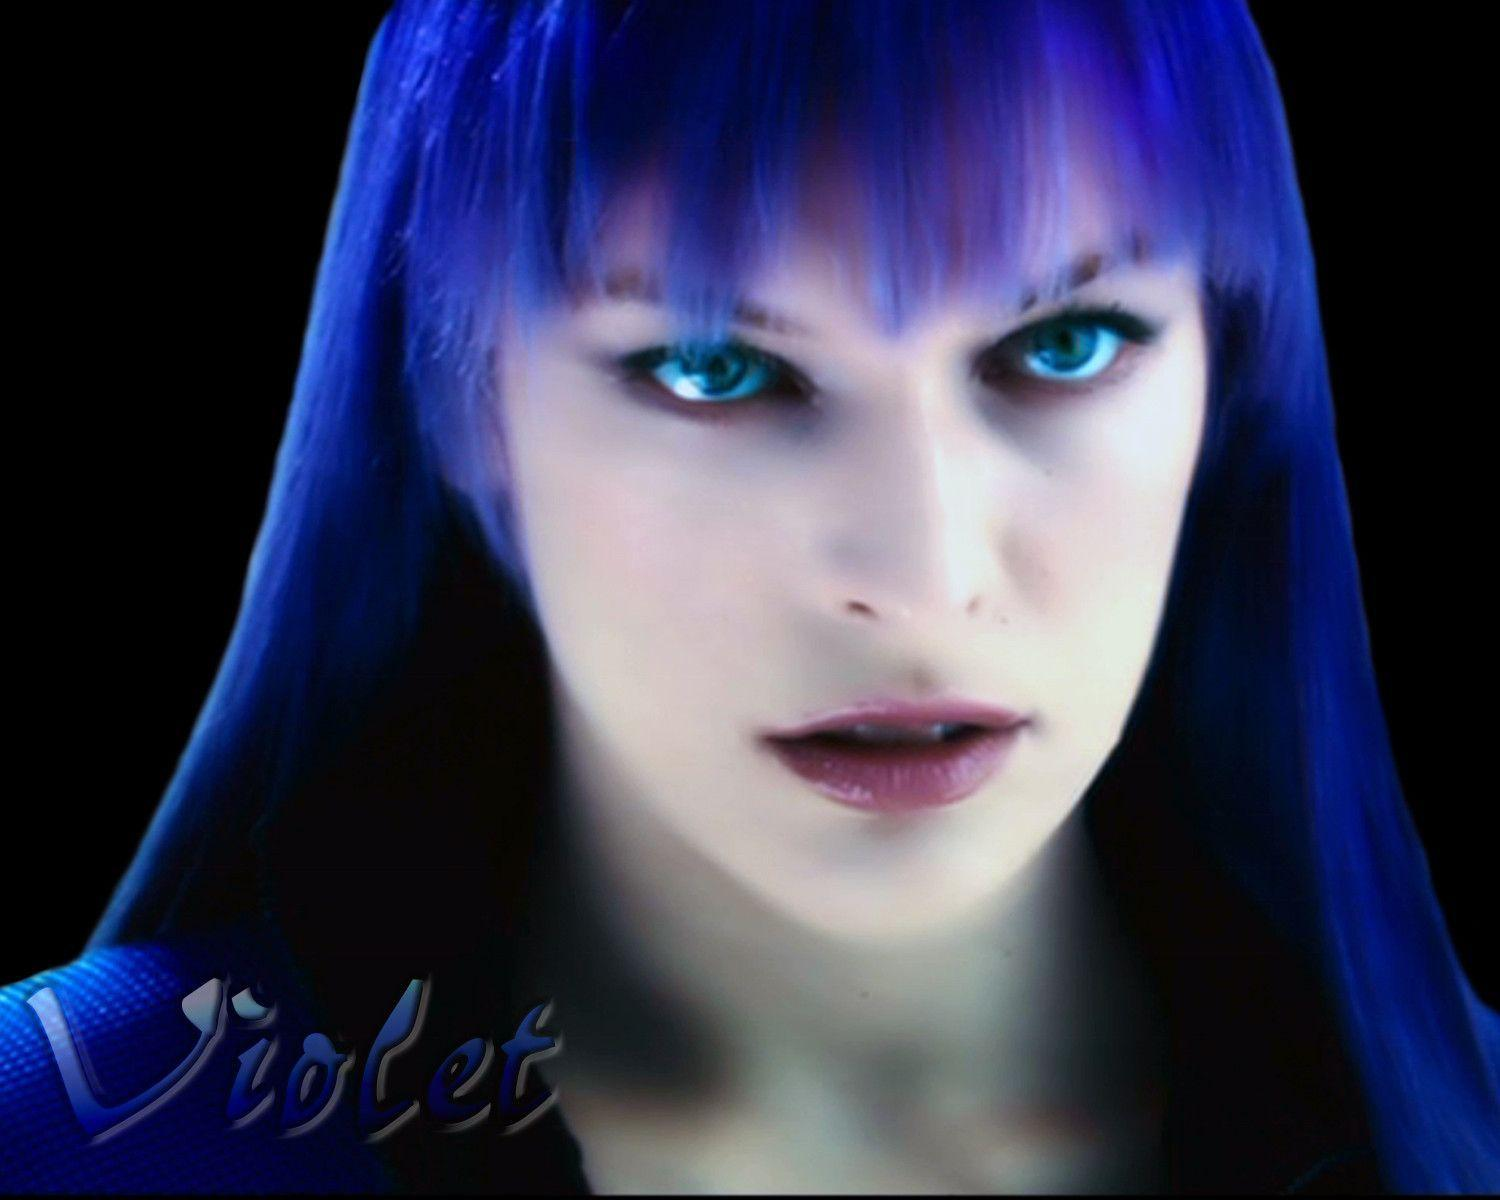 free wallpapers ultraviolet - photo #1